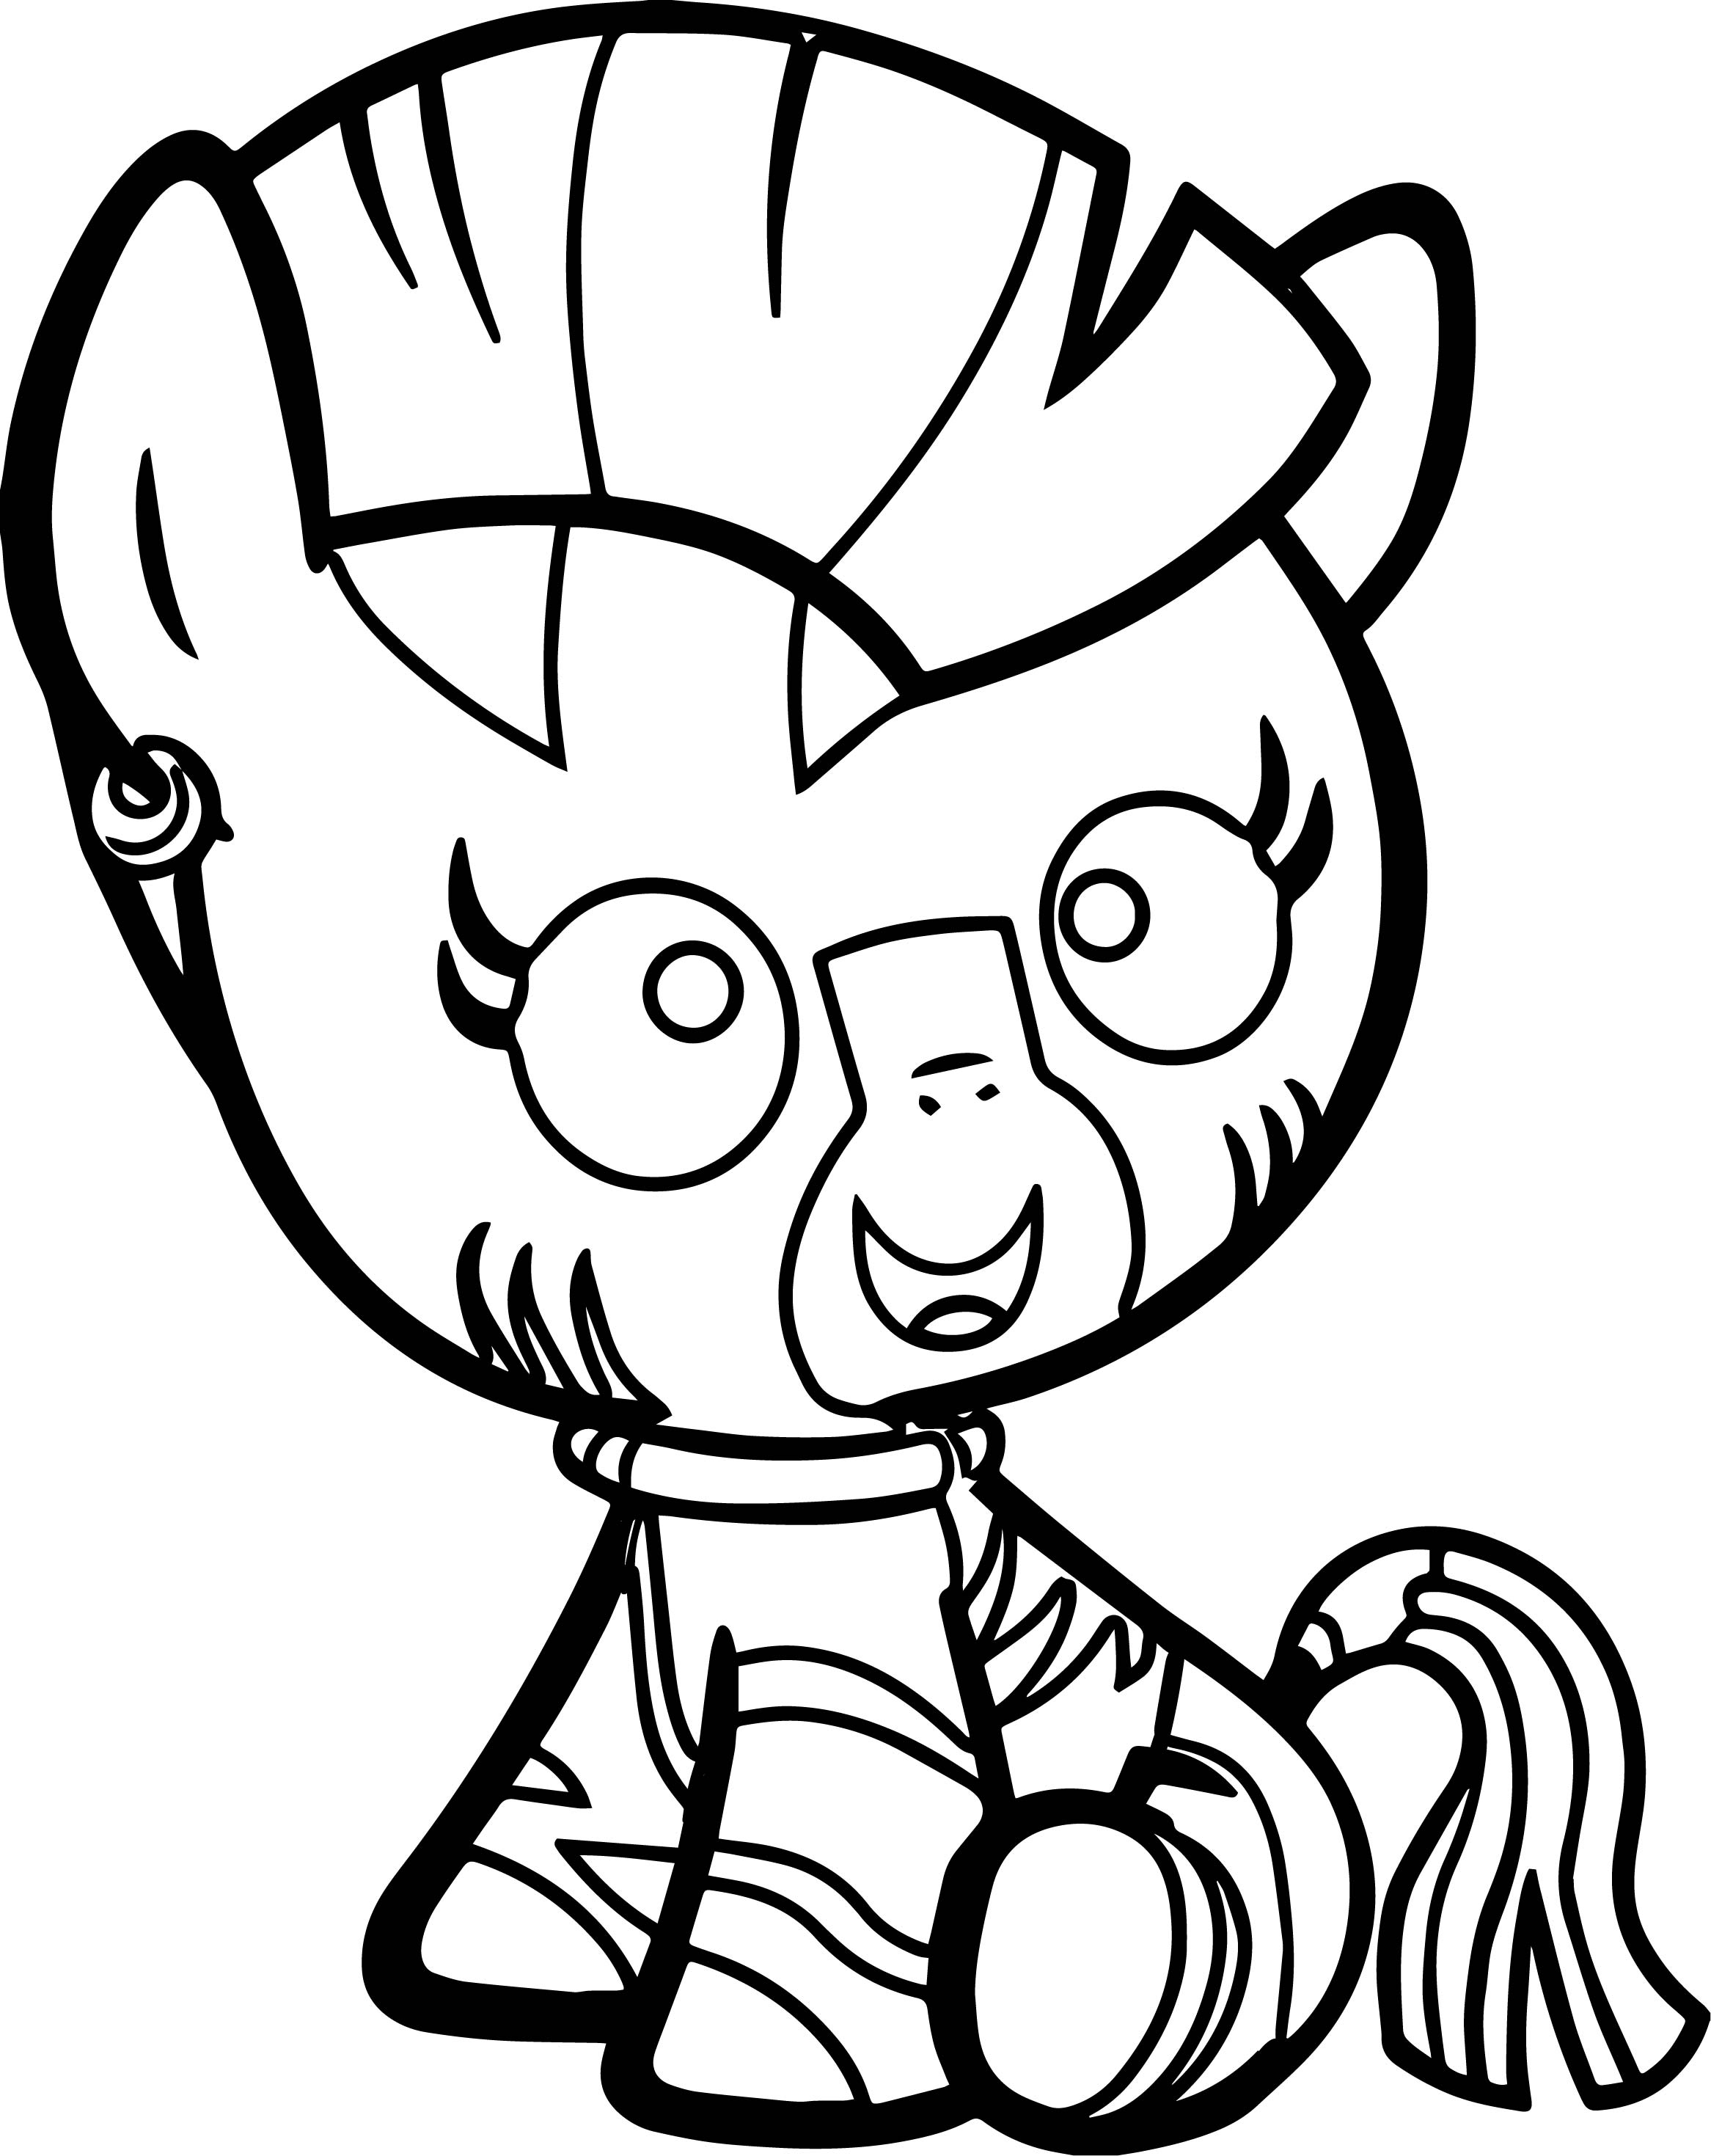 My Little Pony Zecora Coloring Pages : Baby zecora revamped coloring page wecoloringpage